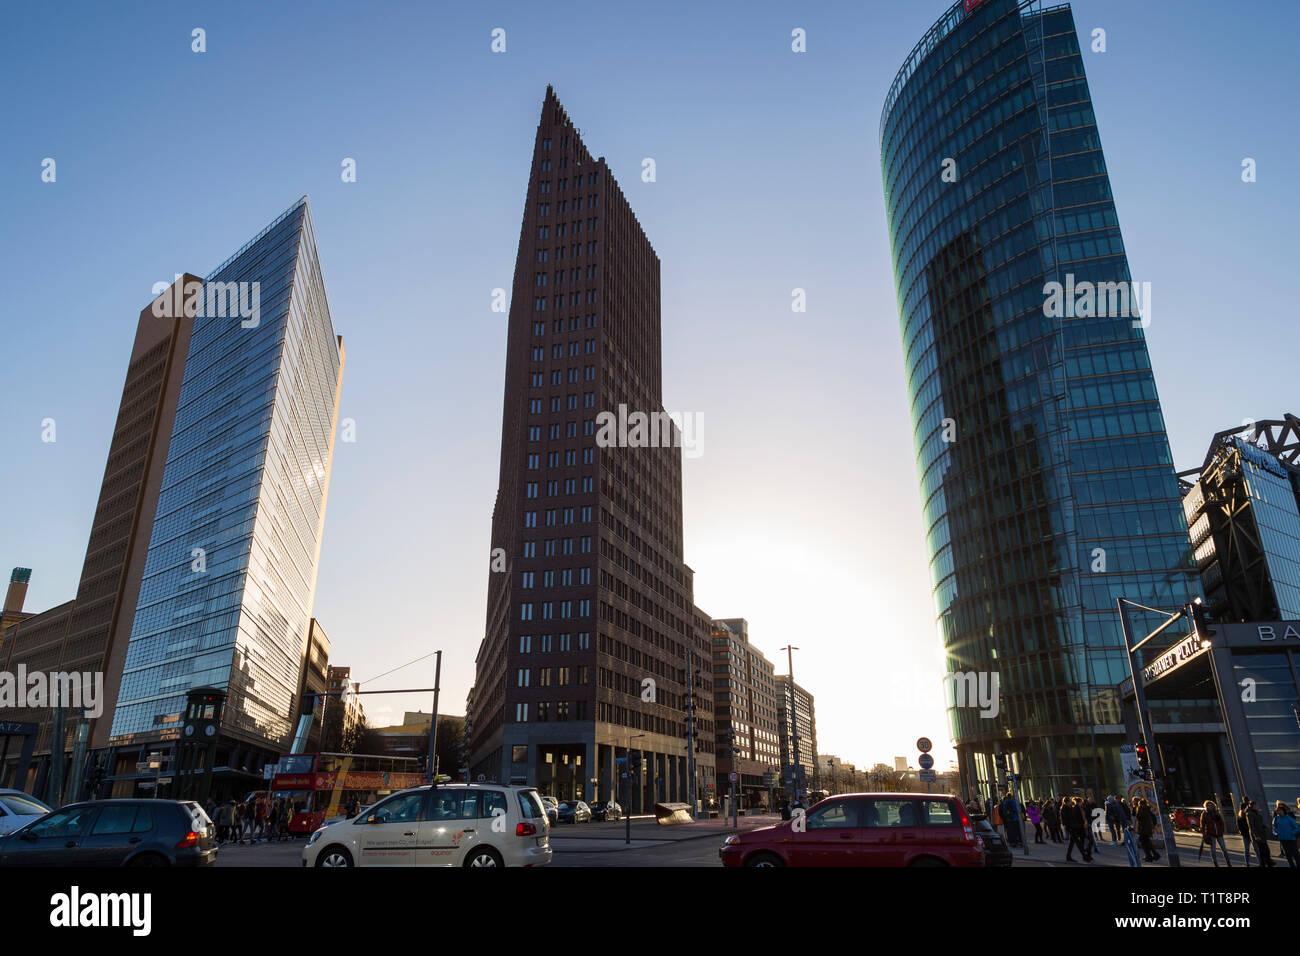 Modern high-rise buildings against clear blue sky and people and cars on the streets at Potsdamer Platz in downtown Berlin, Germany, on a sunny day. Stock Photo